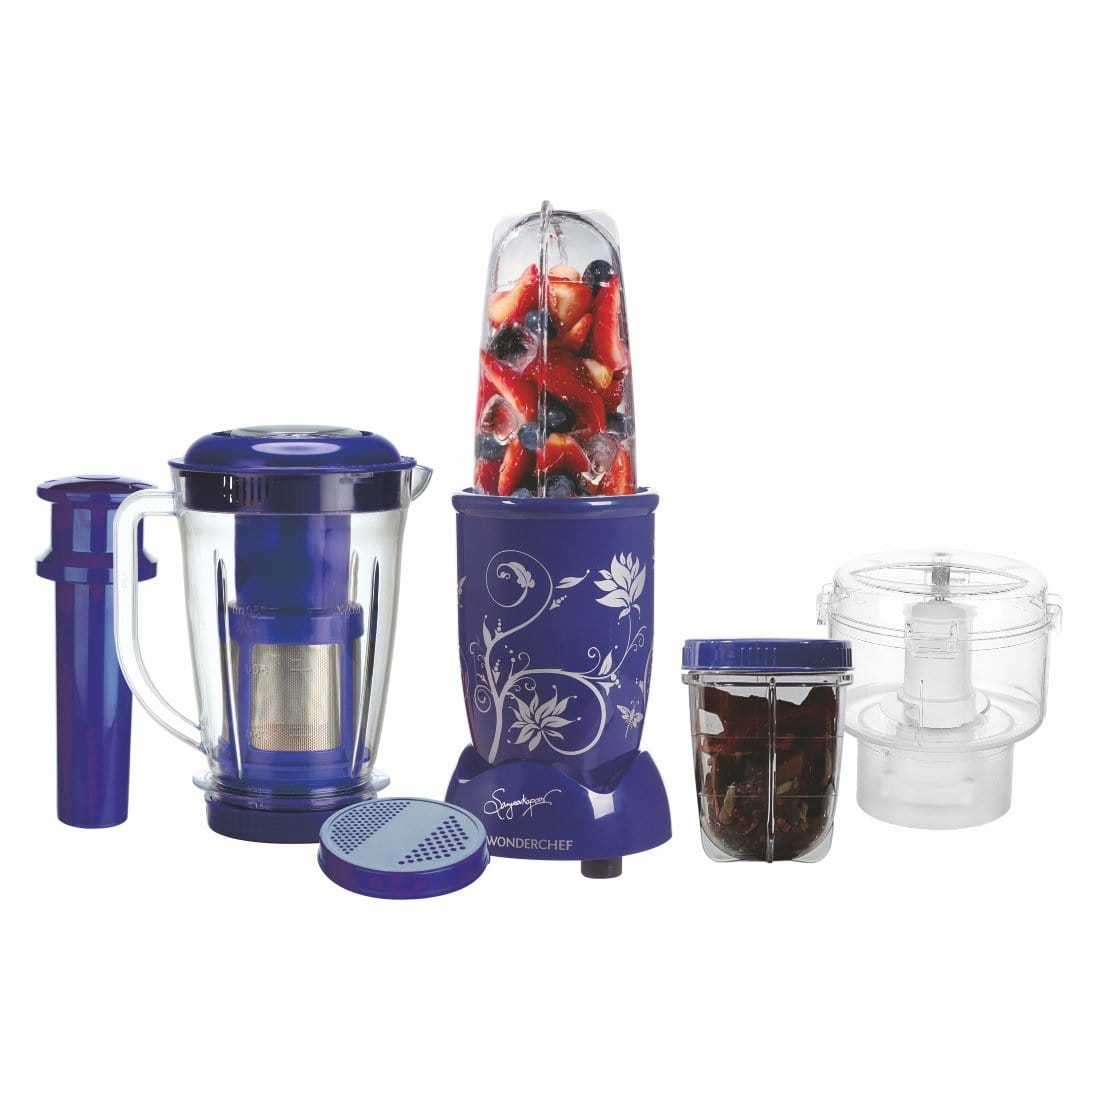 Wonderchef Nutri-Blend Complete Kitchen Machine (CKM) - (Mixer, Grinder, Juicer, And Chopper)-Blue